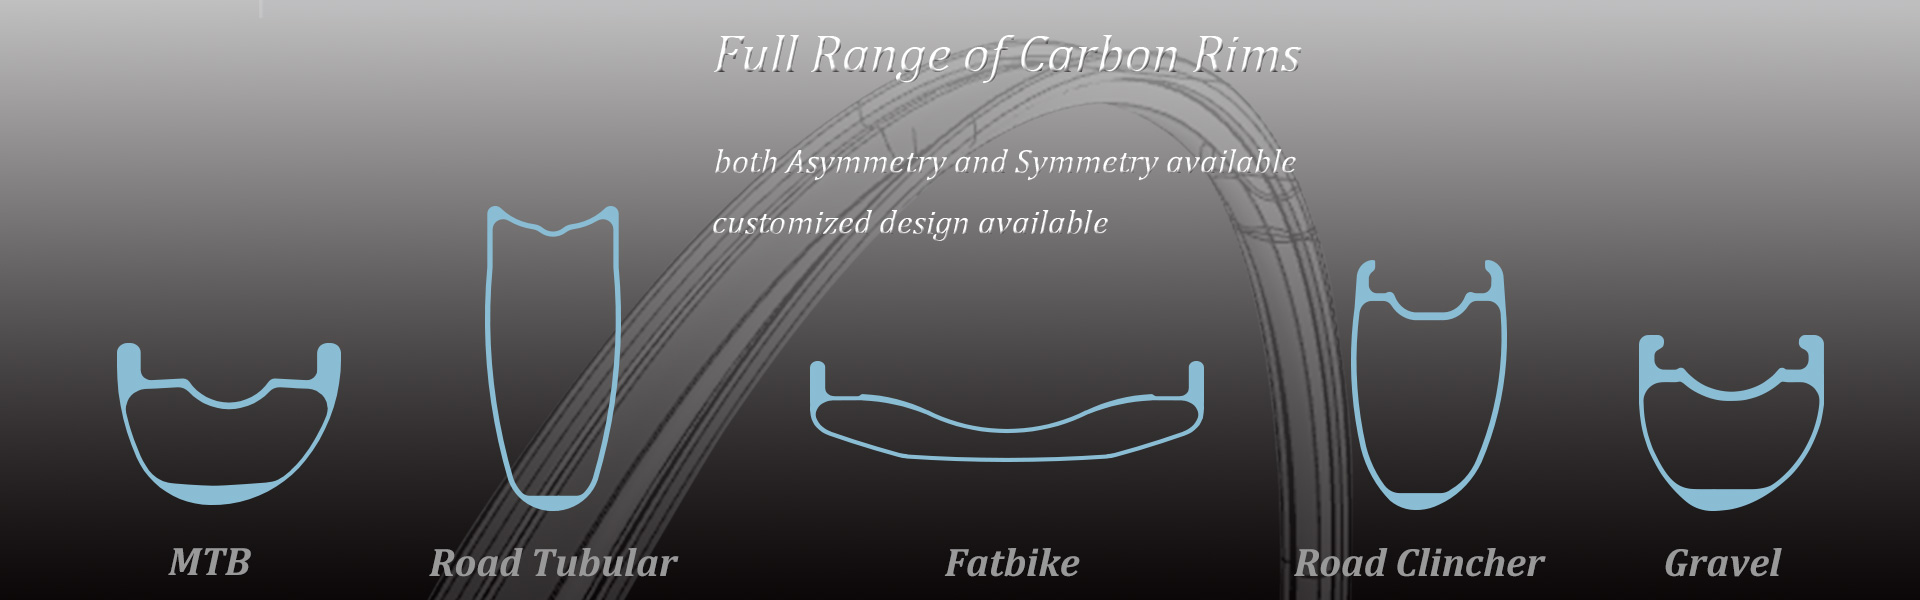 LightCarbon full range of carbon rims